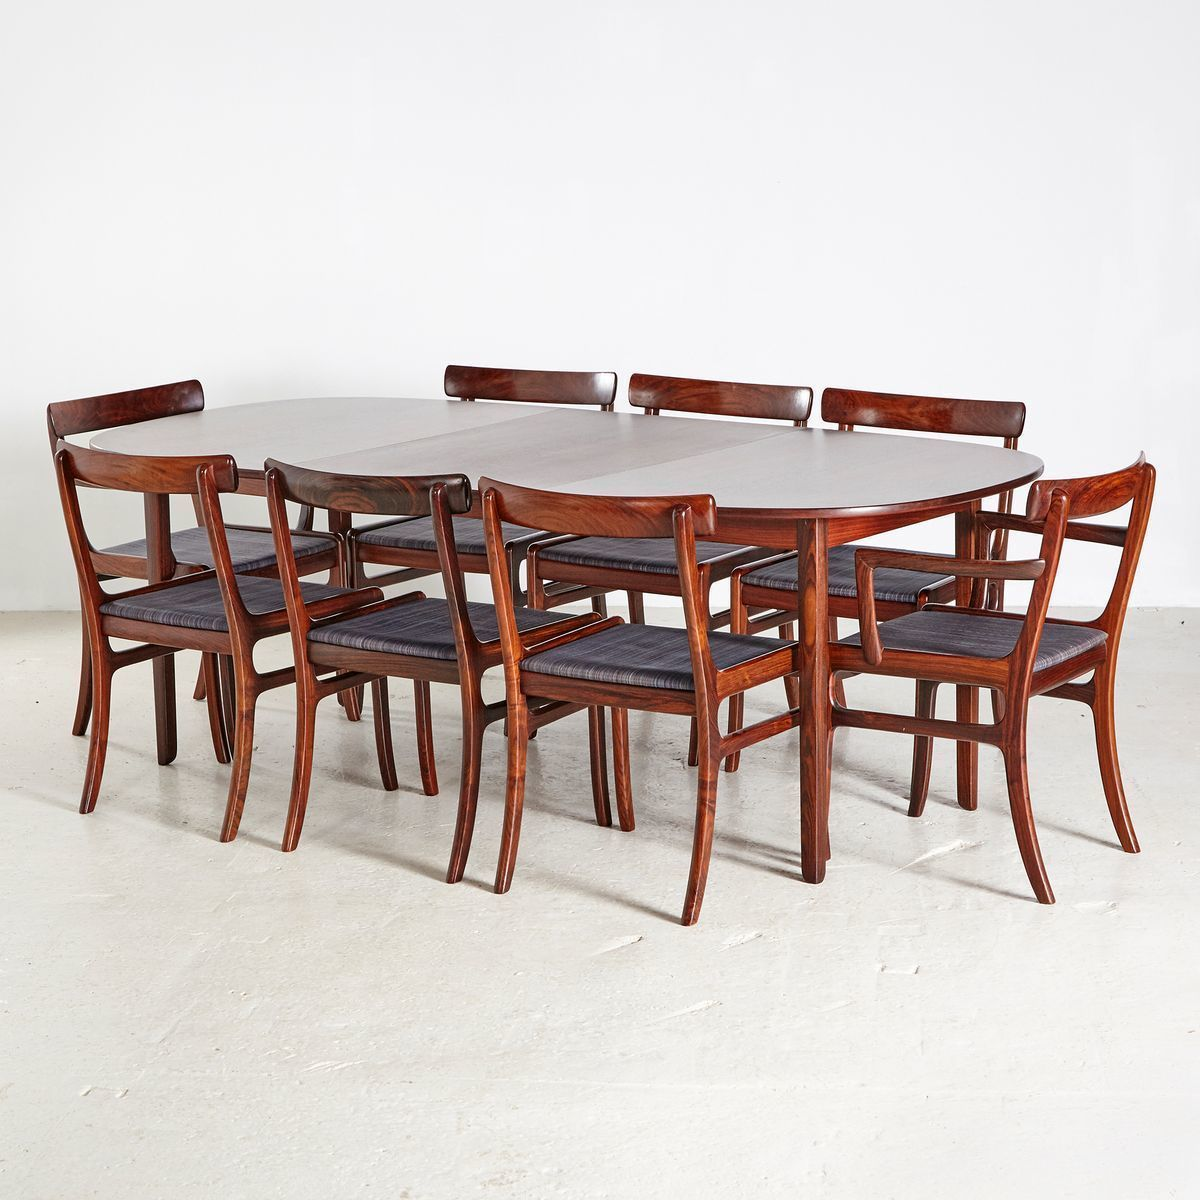 Rungstedlund Rosewood Dining Room Set By Ole Wanscher For Poul Jeppesens Møbelfabrik 1960s